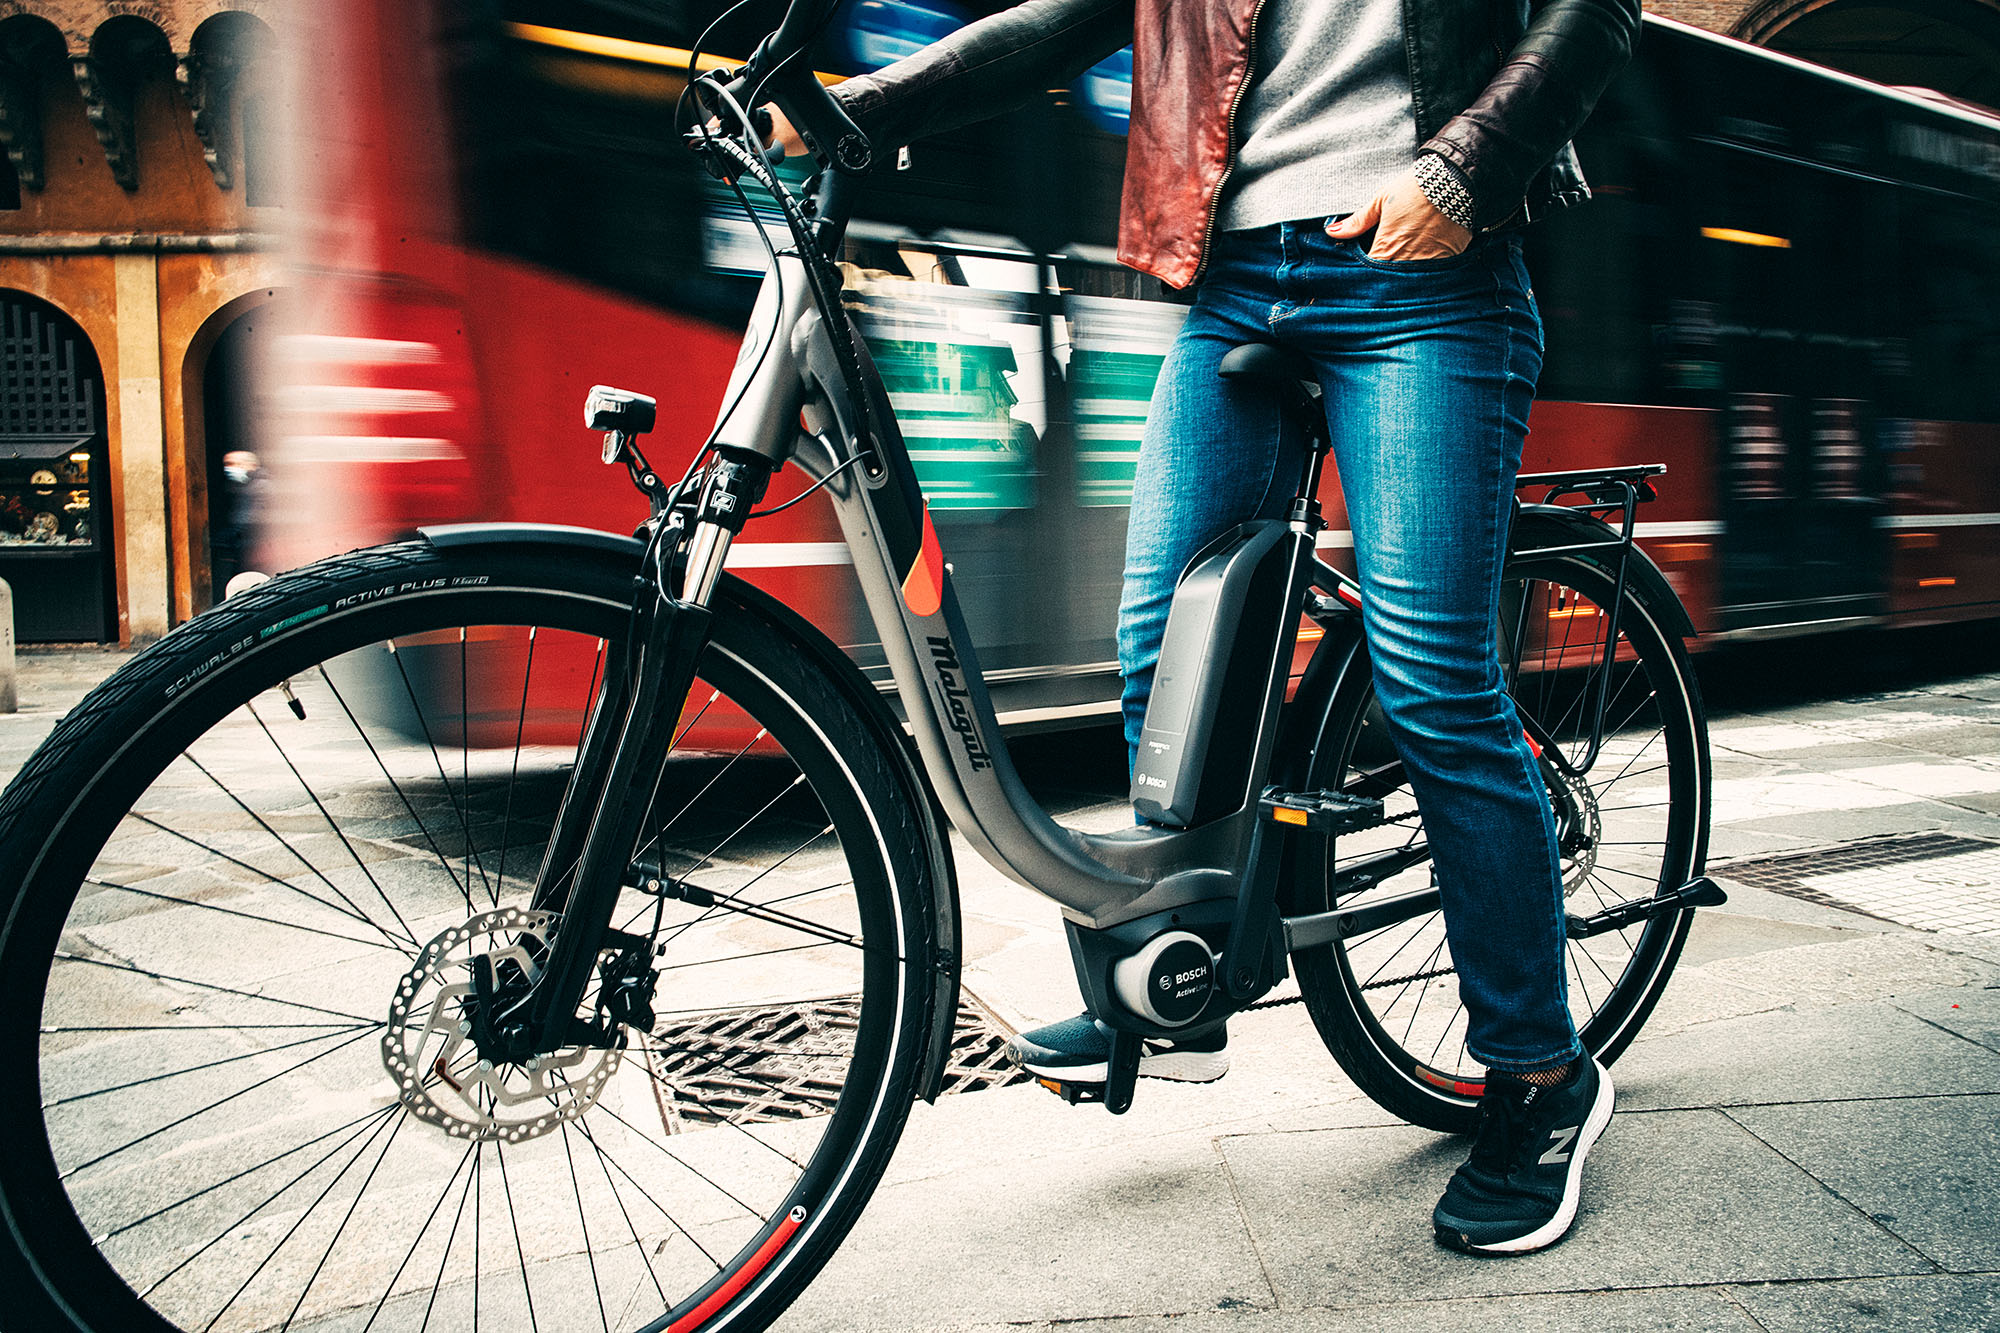 https://malaguti-bicycles.com/wp-content/uploads/sites/2/2020/10/MALAGUTI20_BOLONINA_BOLOGNA_byADL-9616.jpg